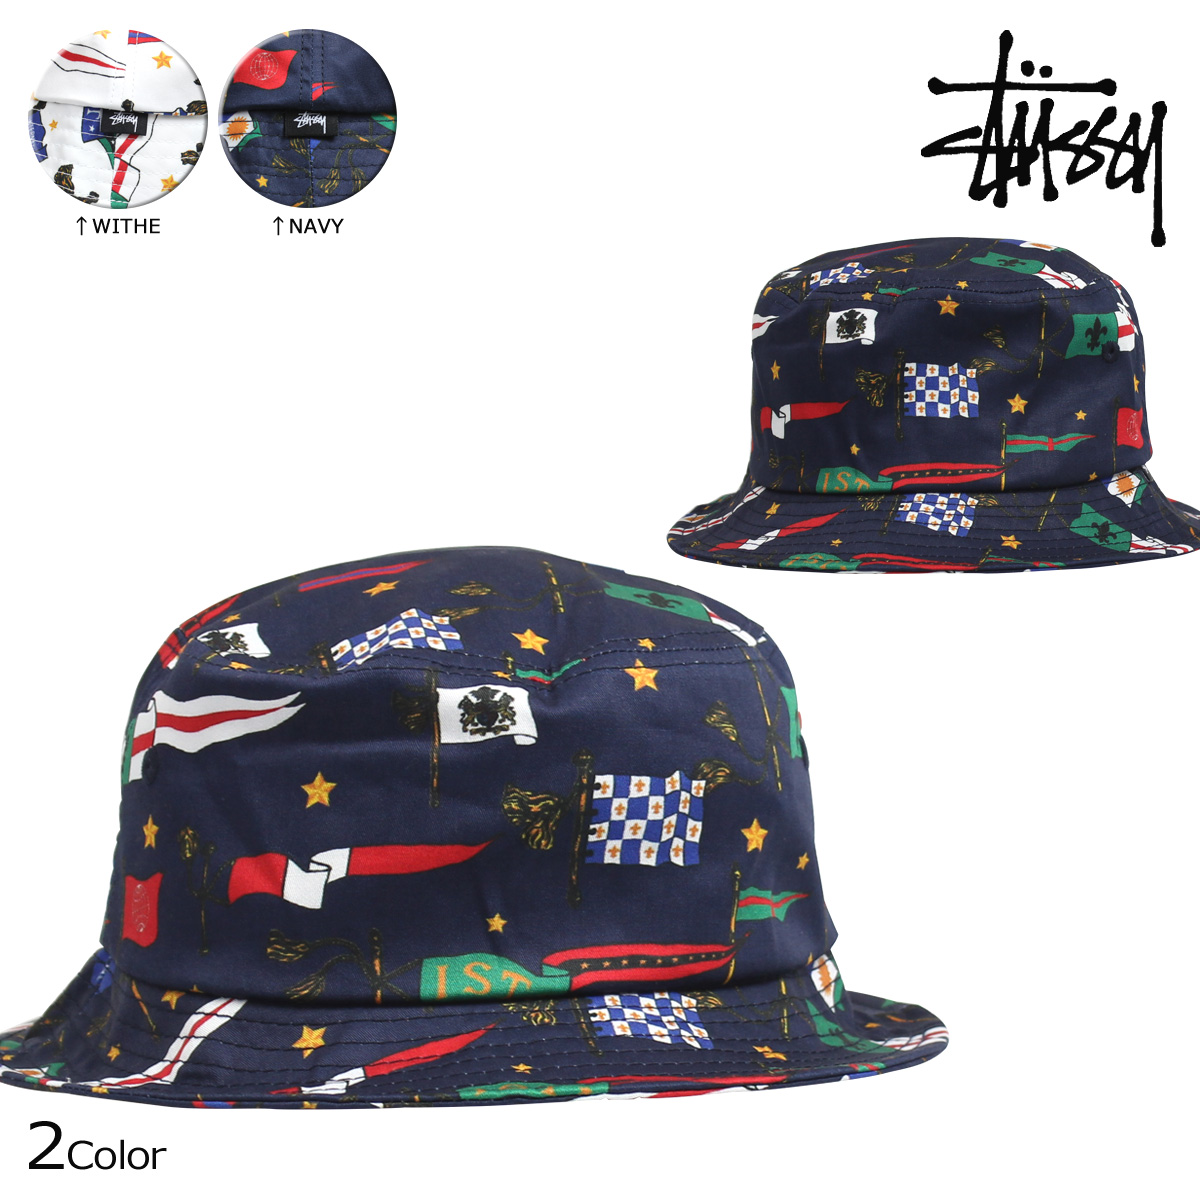 Stussy STUSSY mens bucket hats-hats FLAGS SU15 BUCKET HAT  8 18 new in  stock  8ad8546293d